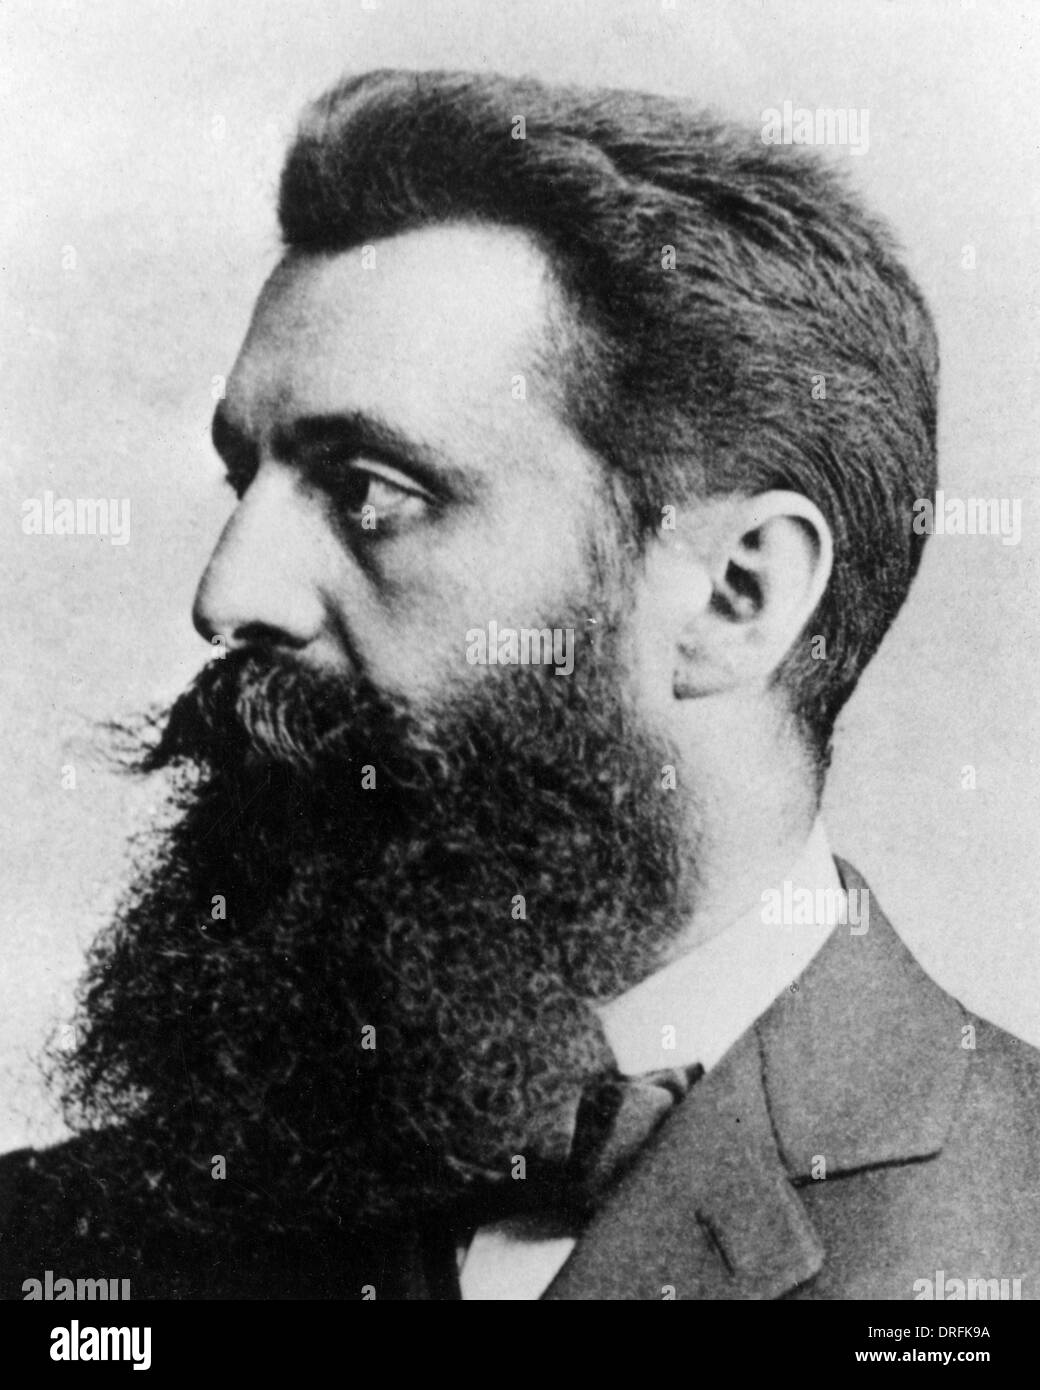 Theodor Herzl, journalist, founder of Zionism - Stock Image